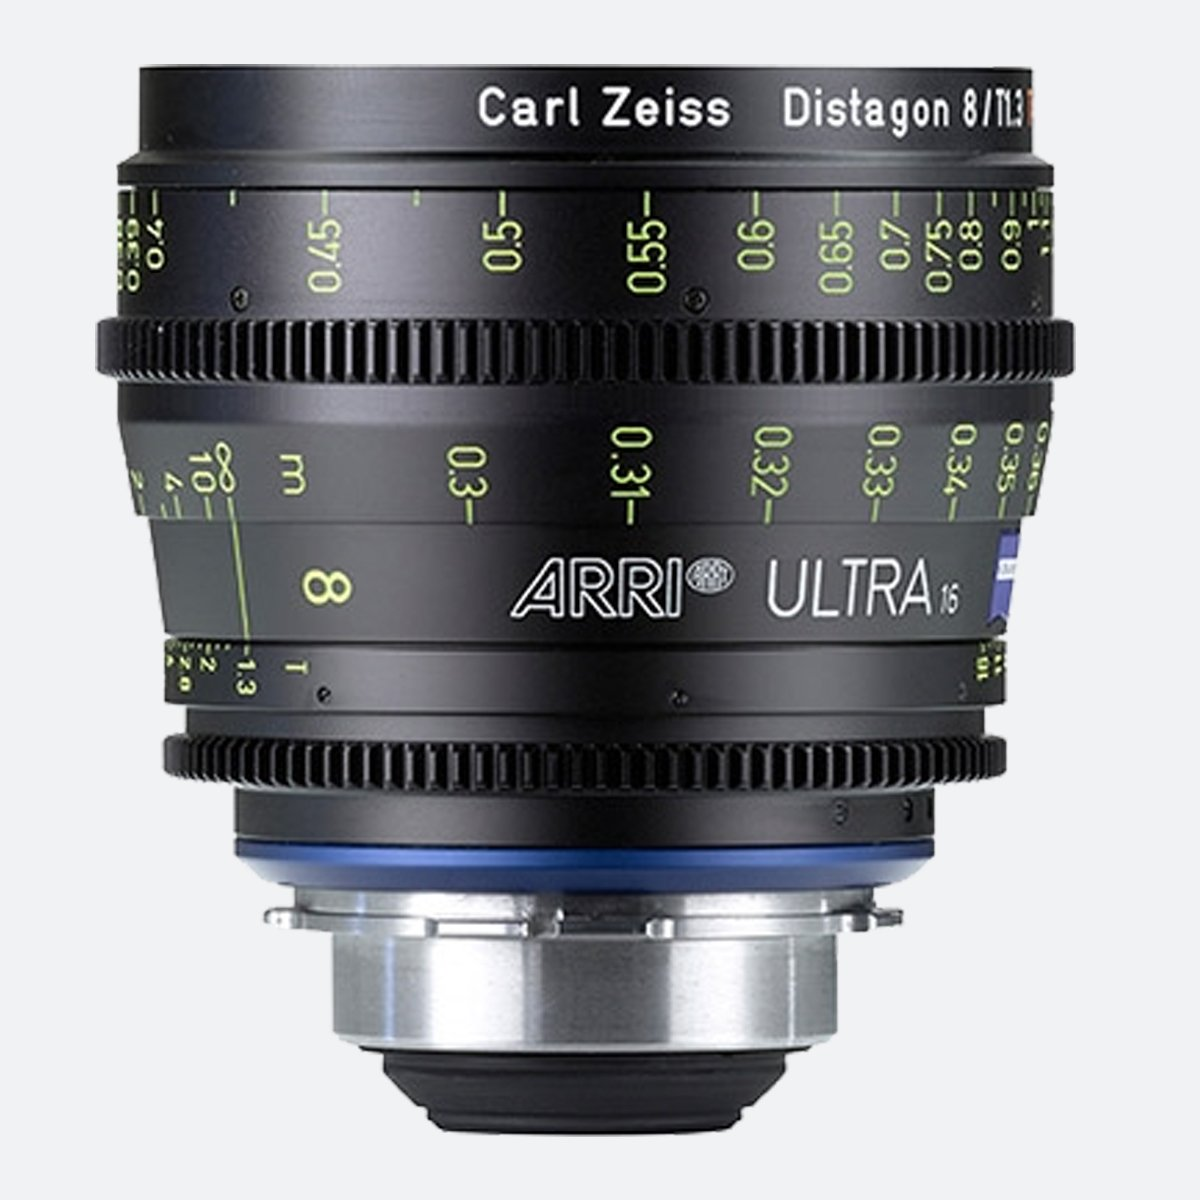 ARRI Ultra 16 T1.3 / 8 mm Super-Wide Lens